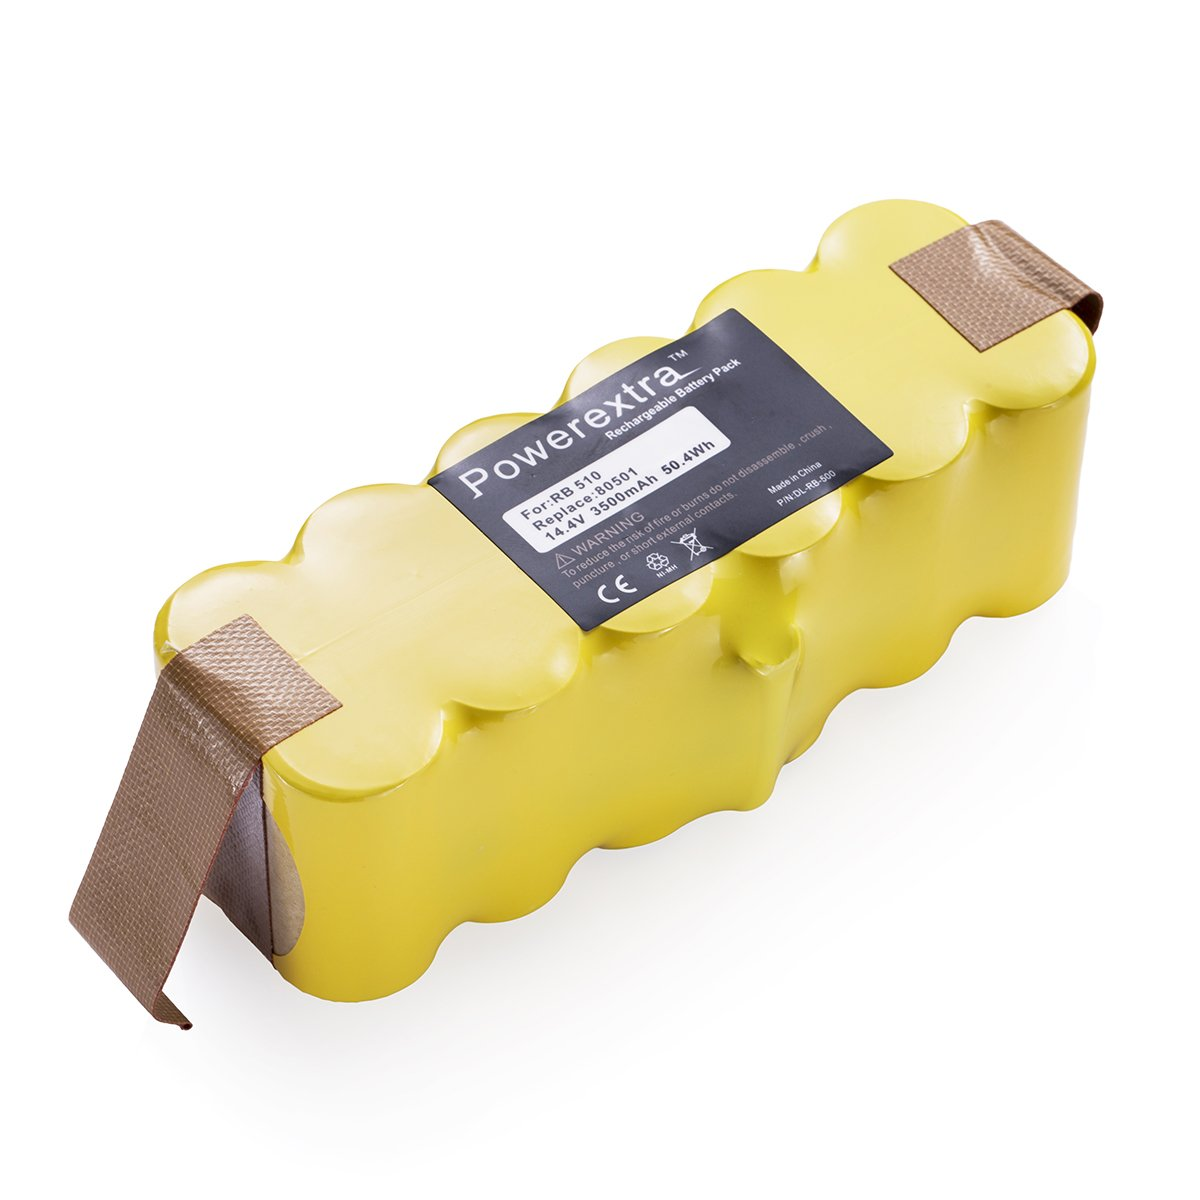 Powerextra 4500mAh Ni-MH Battery Compatible with iRobot R3 500, 600, 700 and 800 Series, 510 530 535 540 550 560 570 580 610 760 770 780 800 870 880 Robotic Vacuums